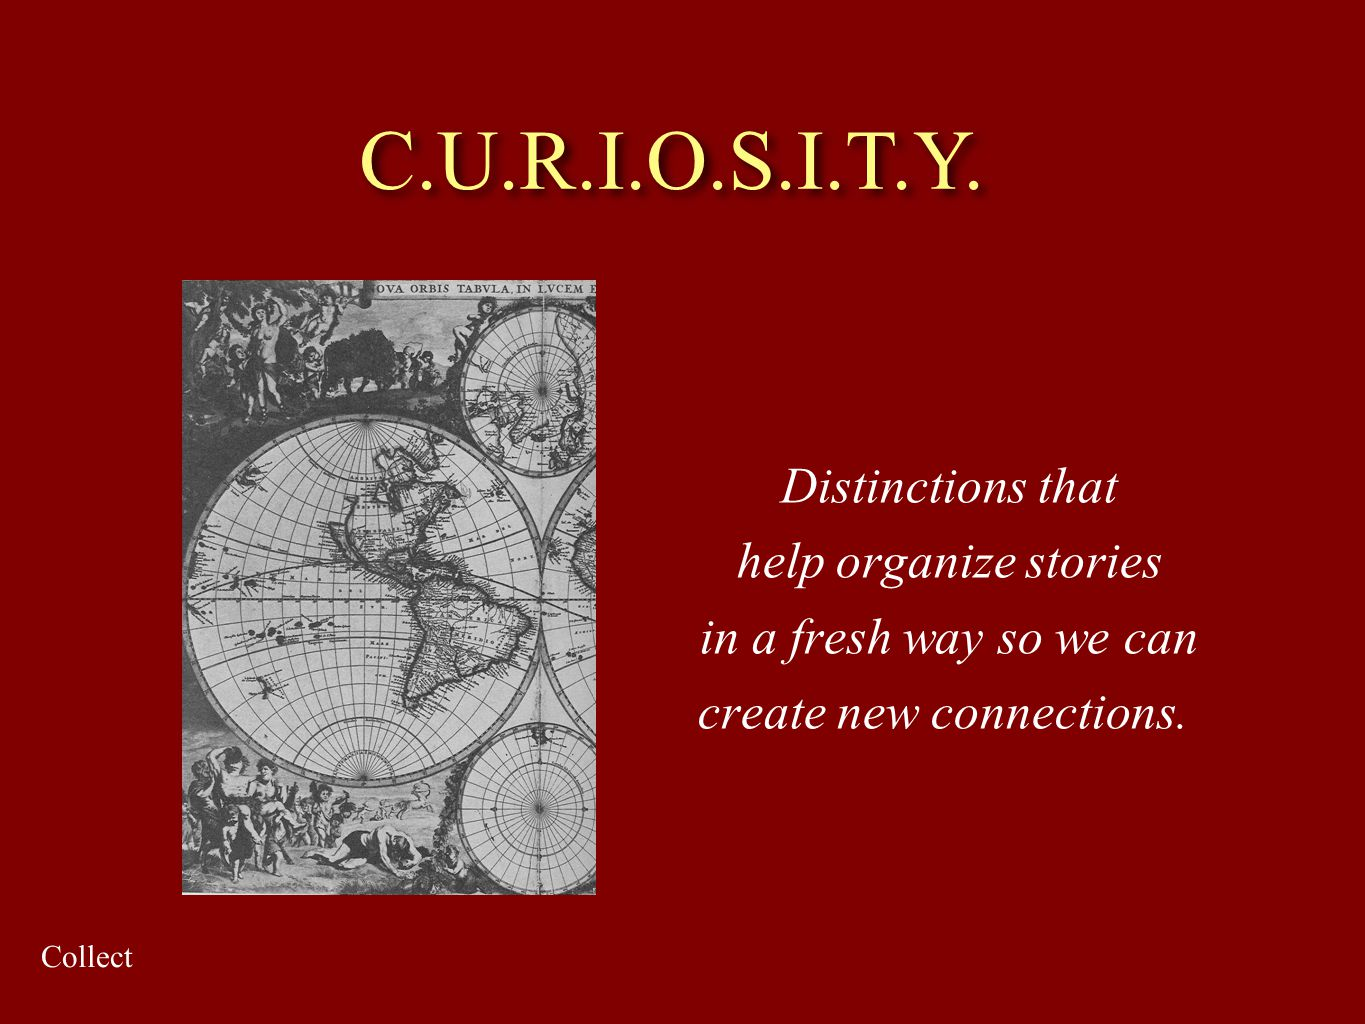 Distinctions that help organize stories in a fresh way so we can create new connections. C.U.R.I.O.S.I.T.Y. Collect